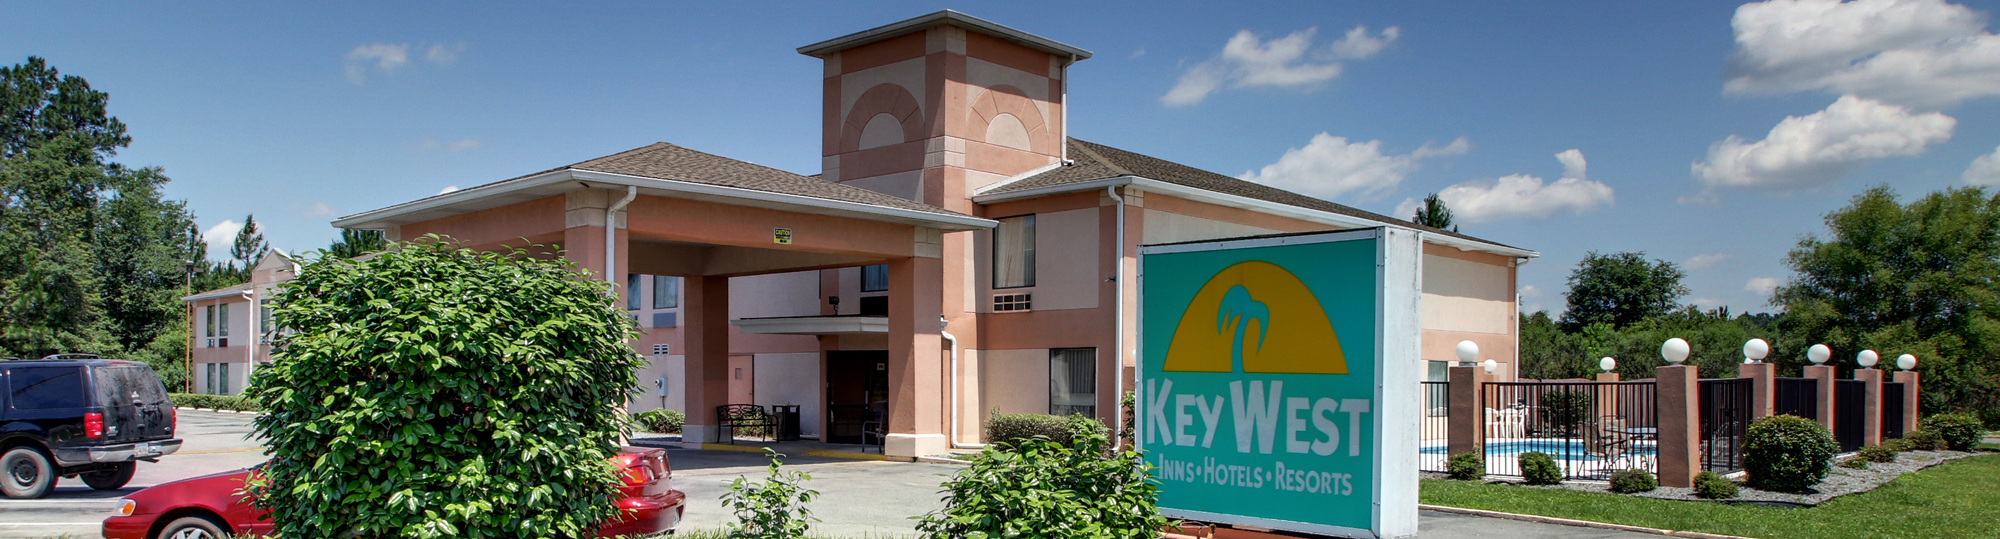 Key West Inn Hotels and Resorts Baxley